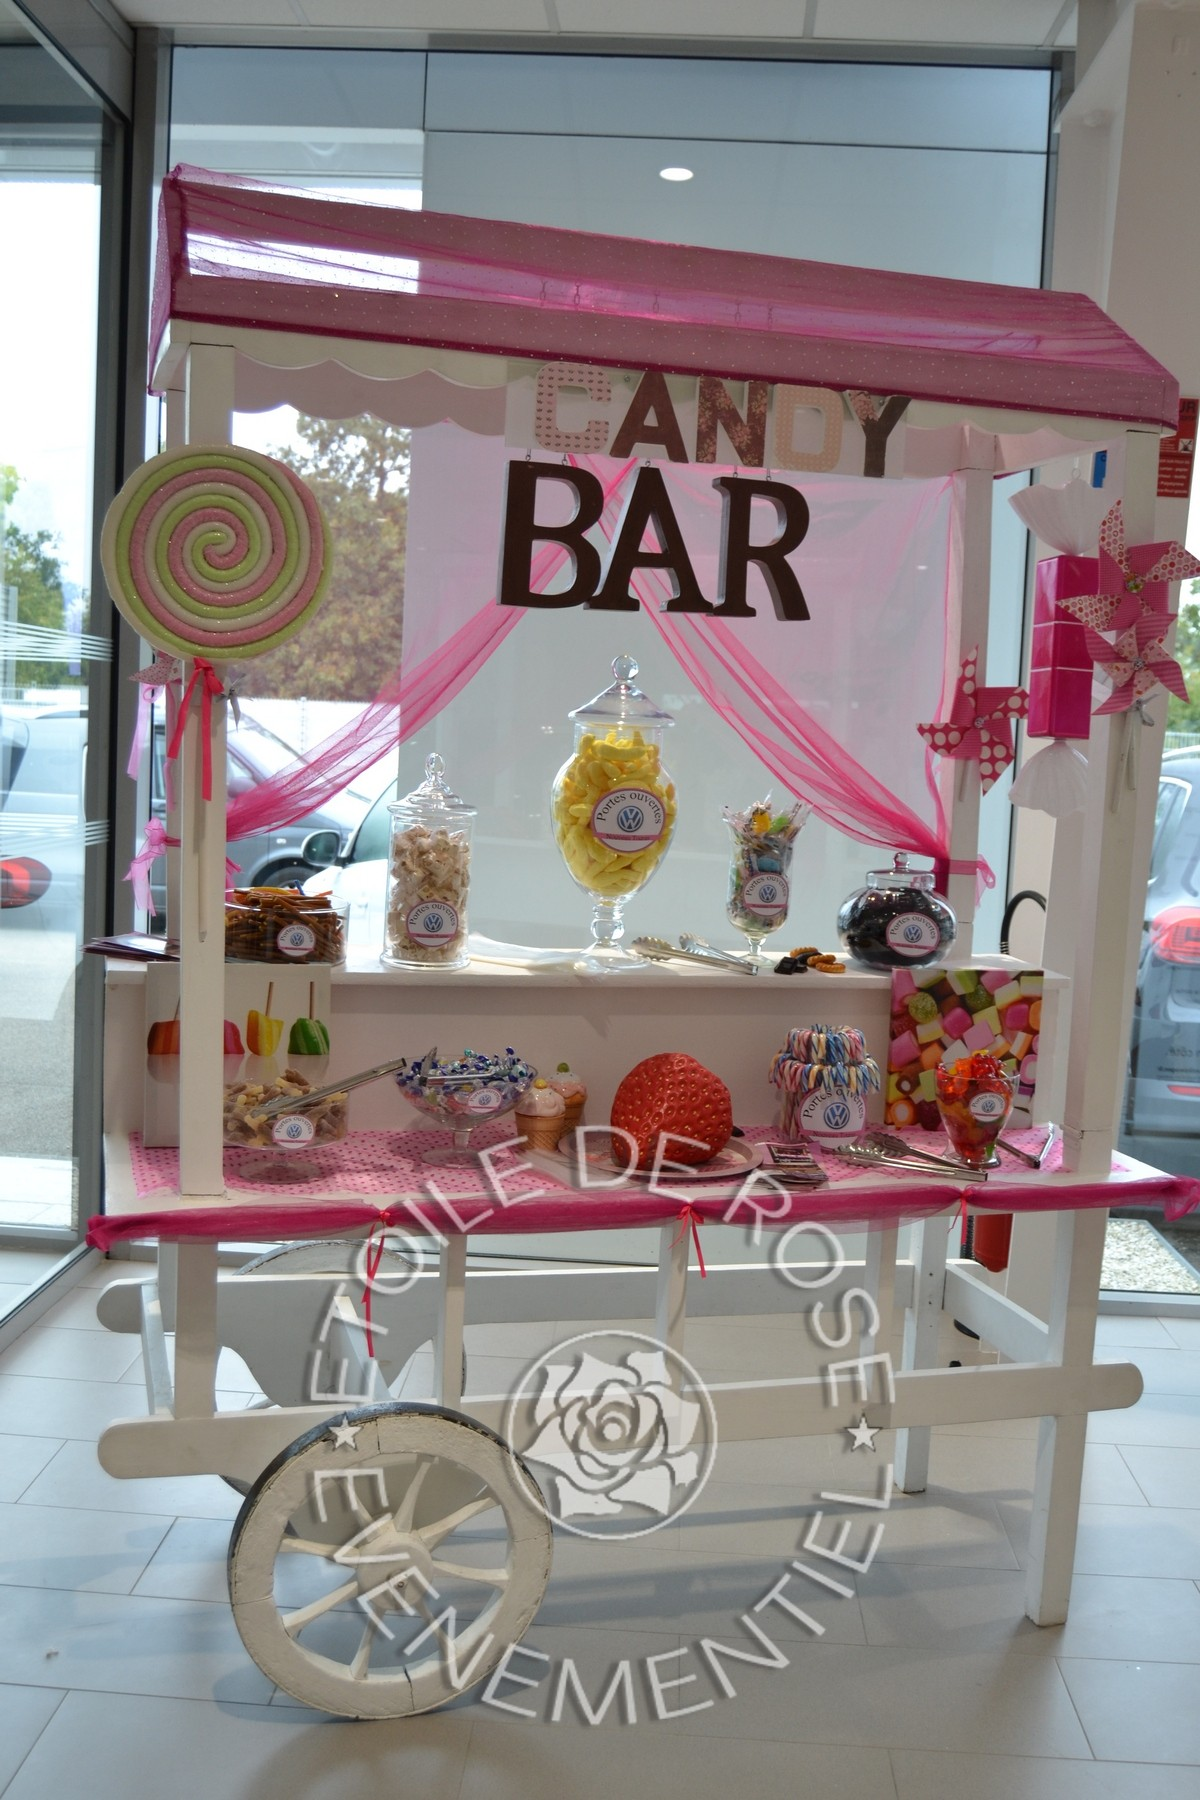 Location voiture mr mrs candy bar housses nappes rondes - Candy bar pas cher ...